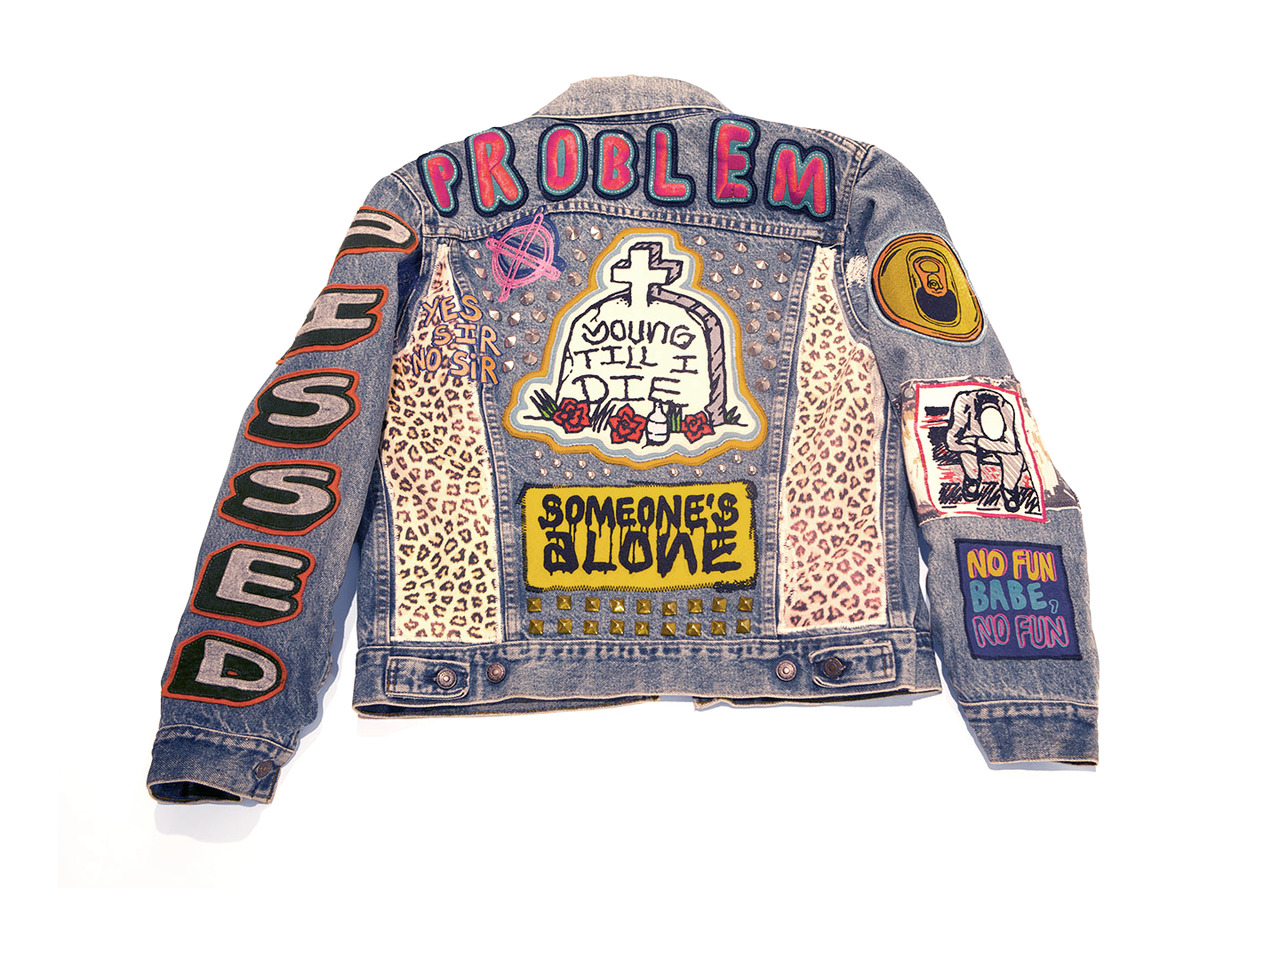 Jack Greer jacket. Check out DILLIGAF art show at ALLDAYEVERYDAY this weekend!